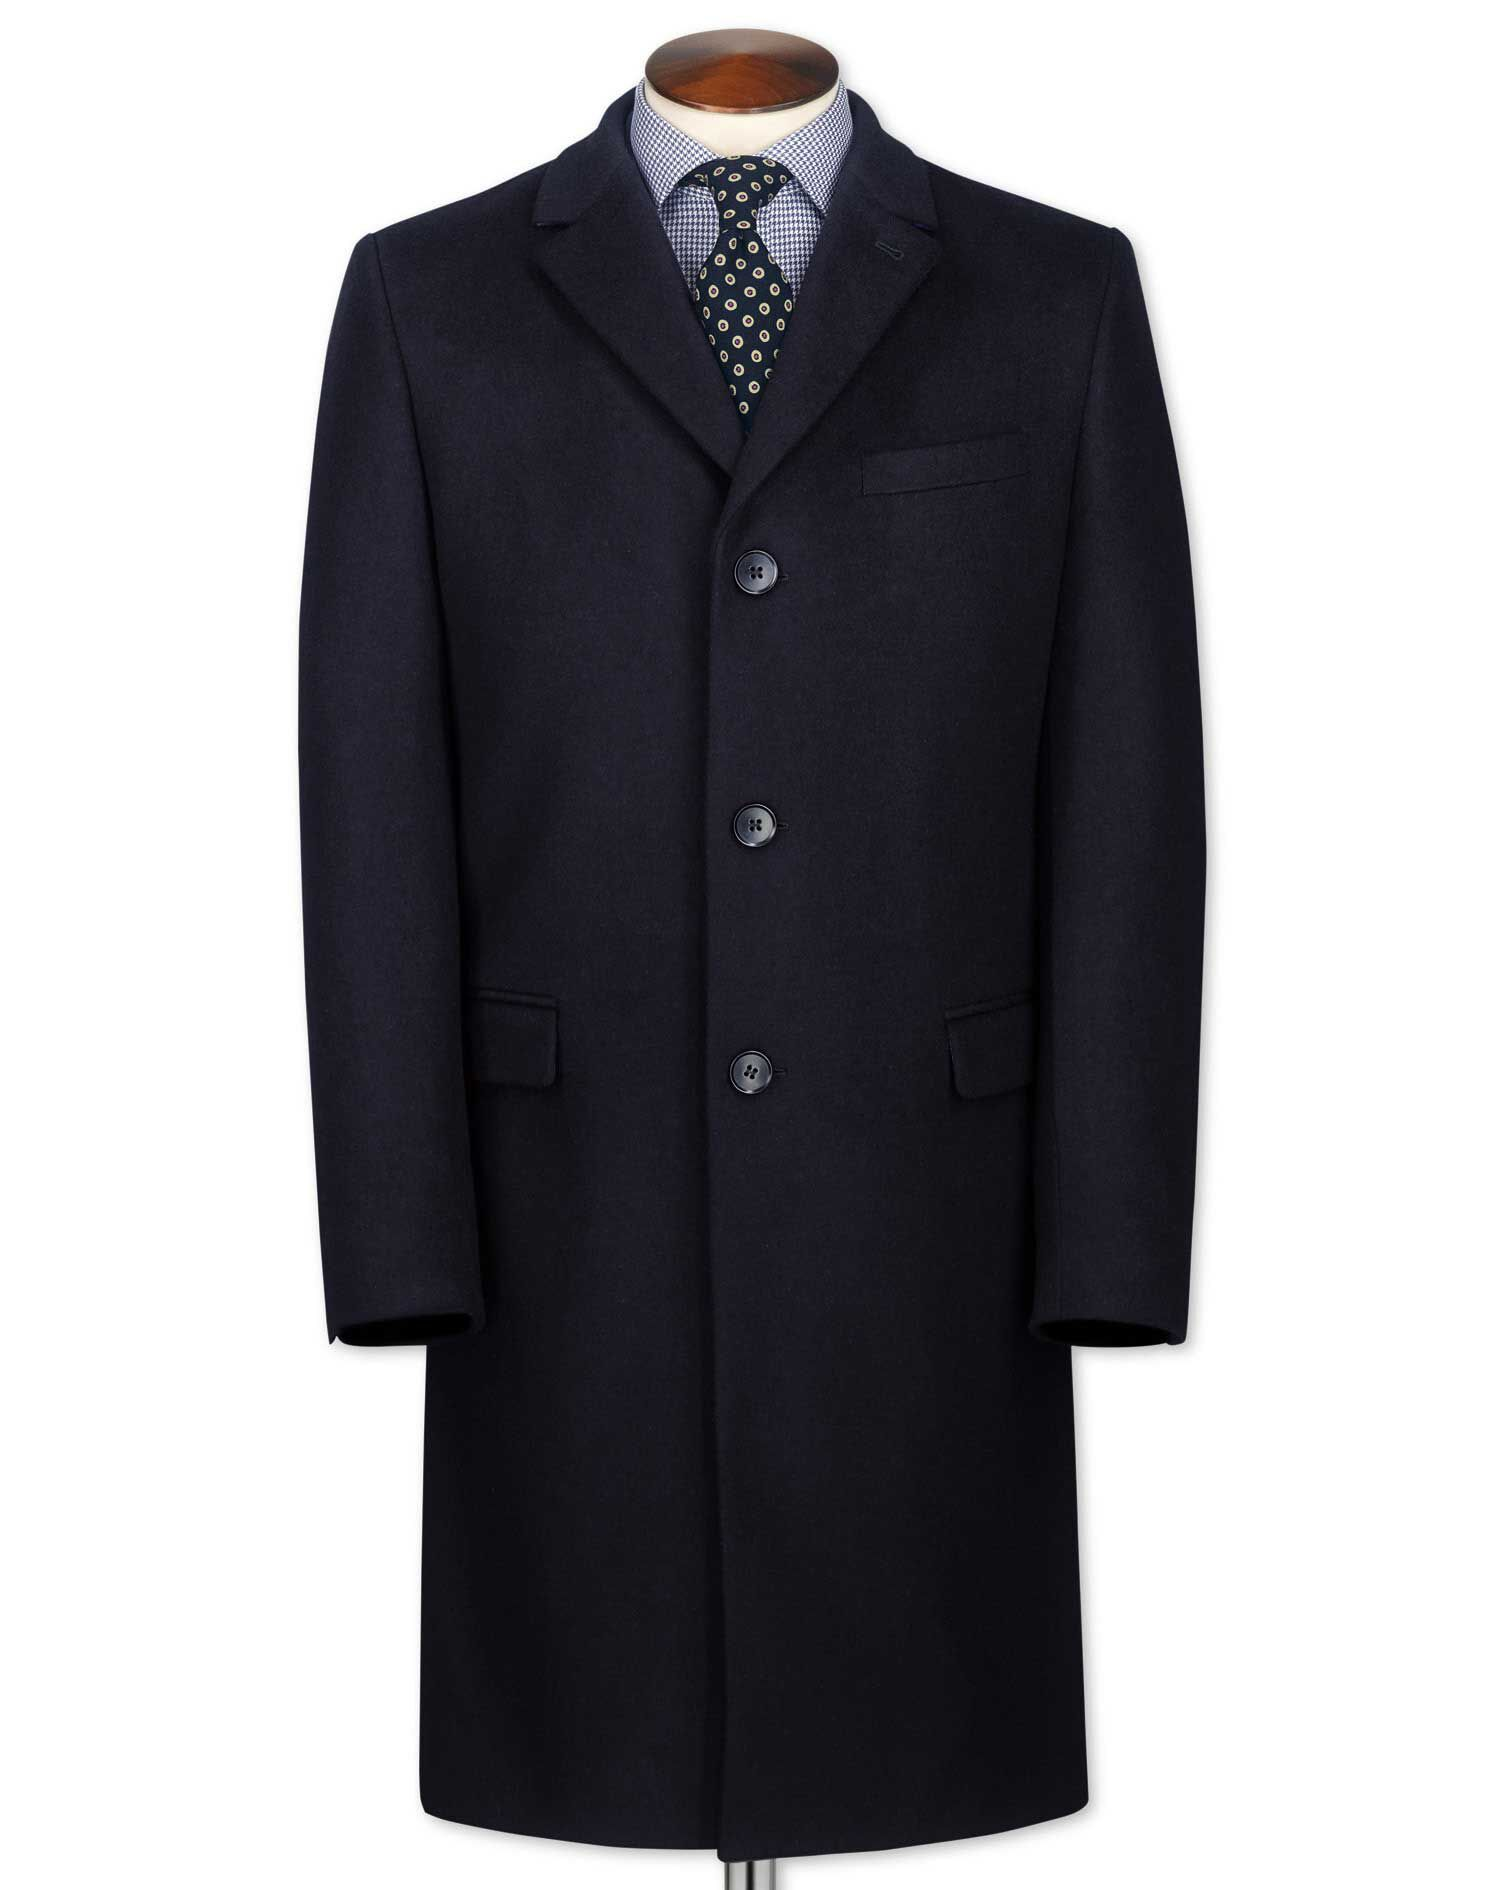 Classic Fit Navy Wool and Cashmere Overcoat Size 38 by Charles Tyrwhitt